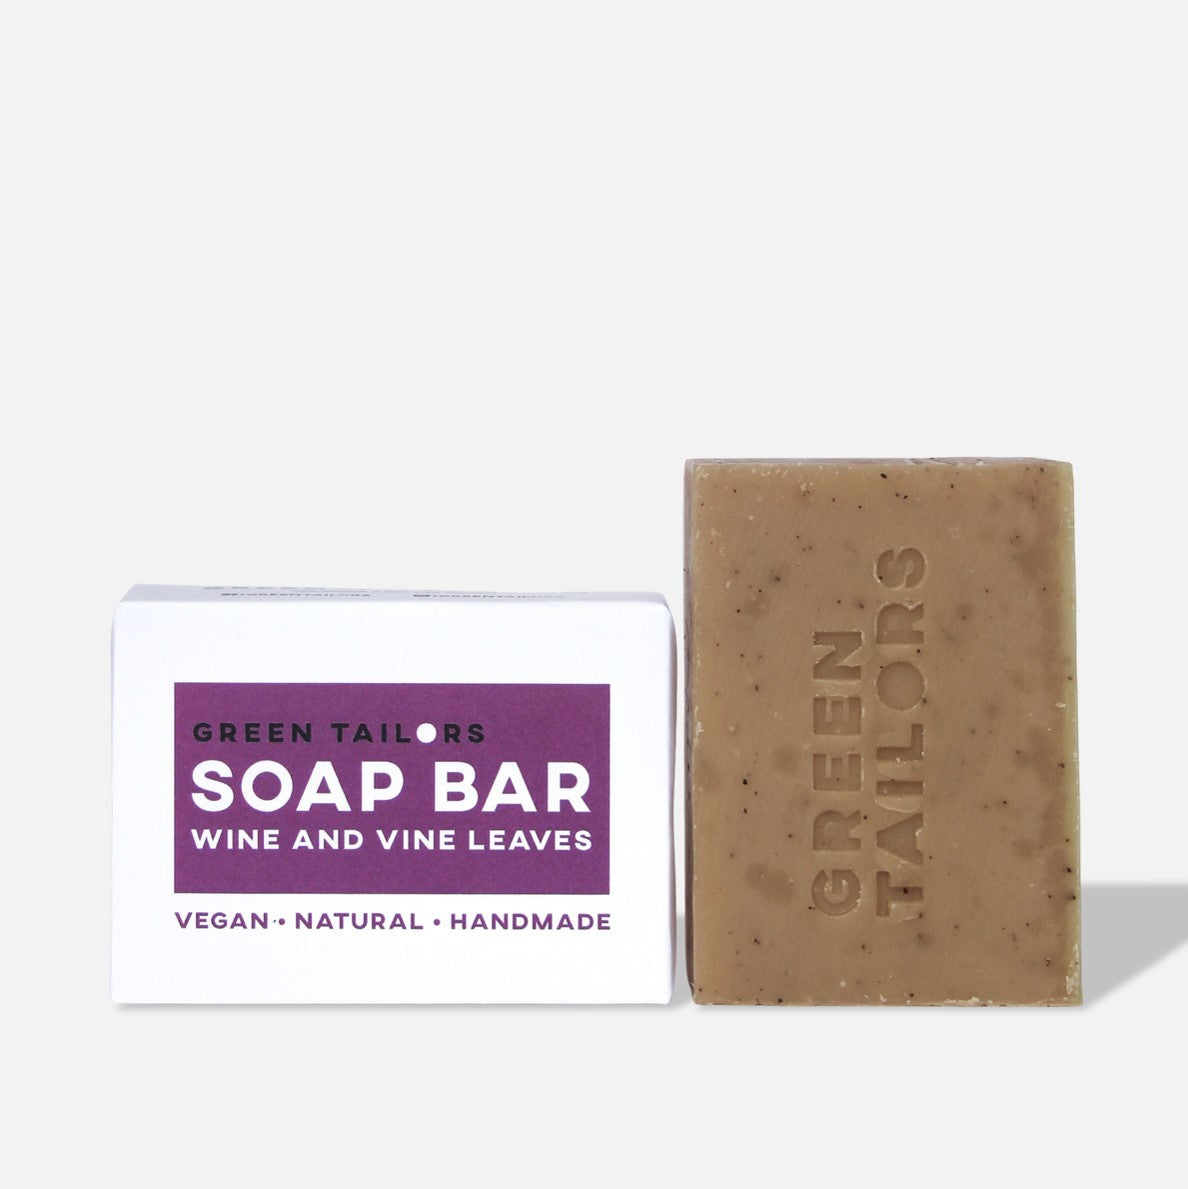 SOAP BAR Wine and Vine leaves